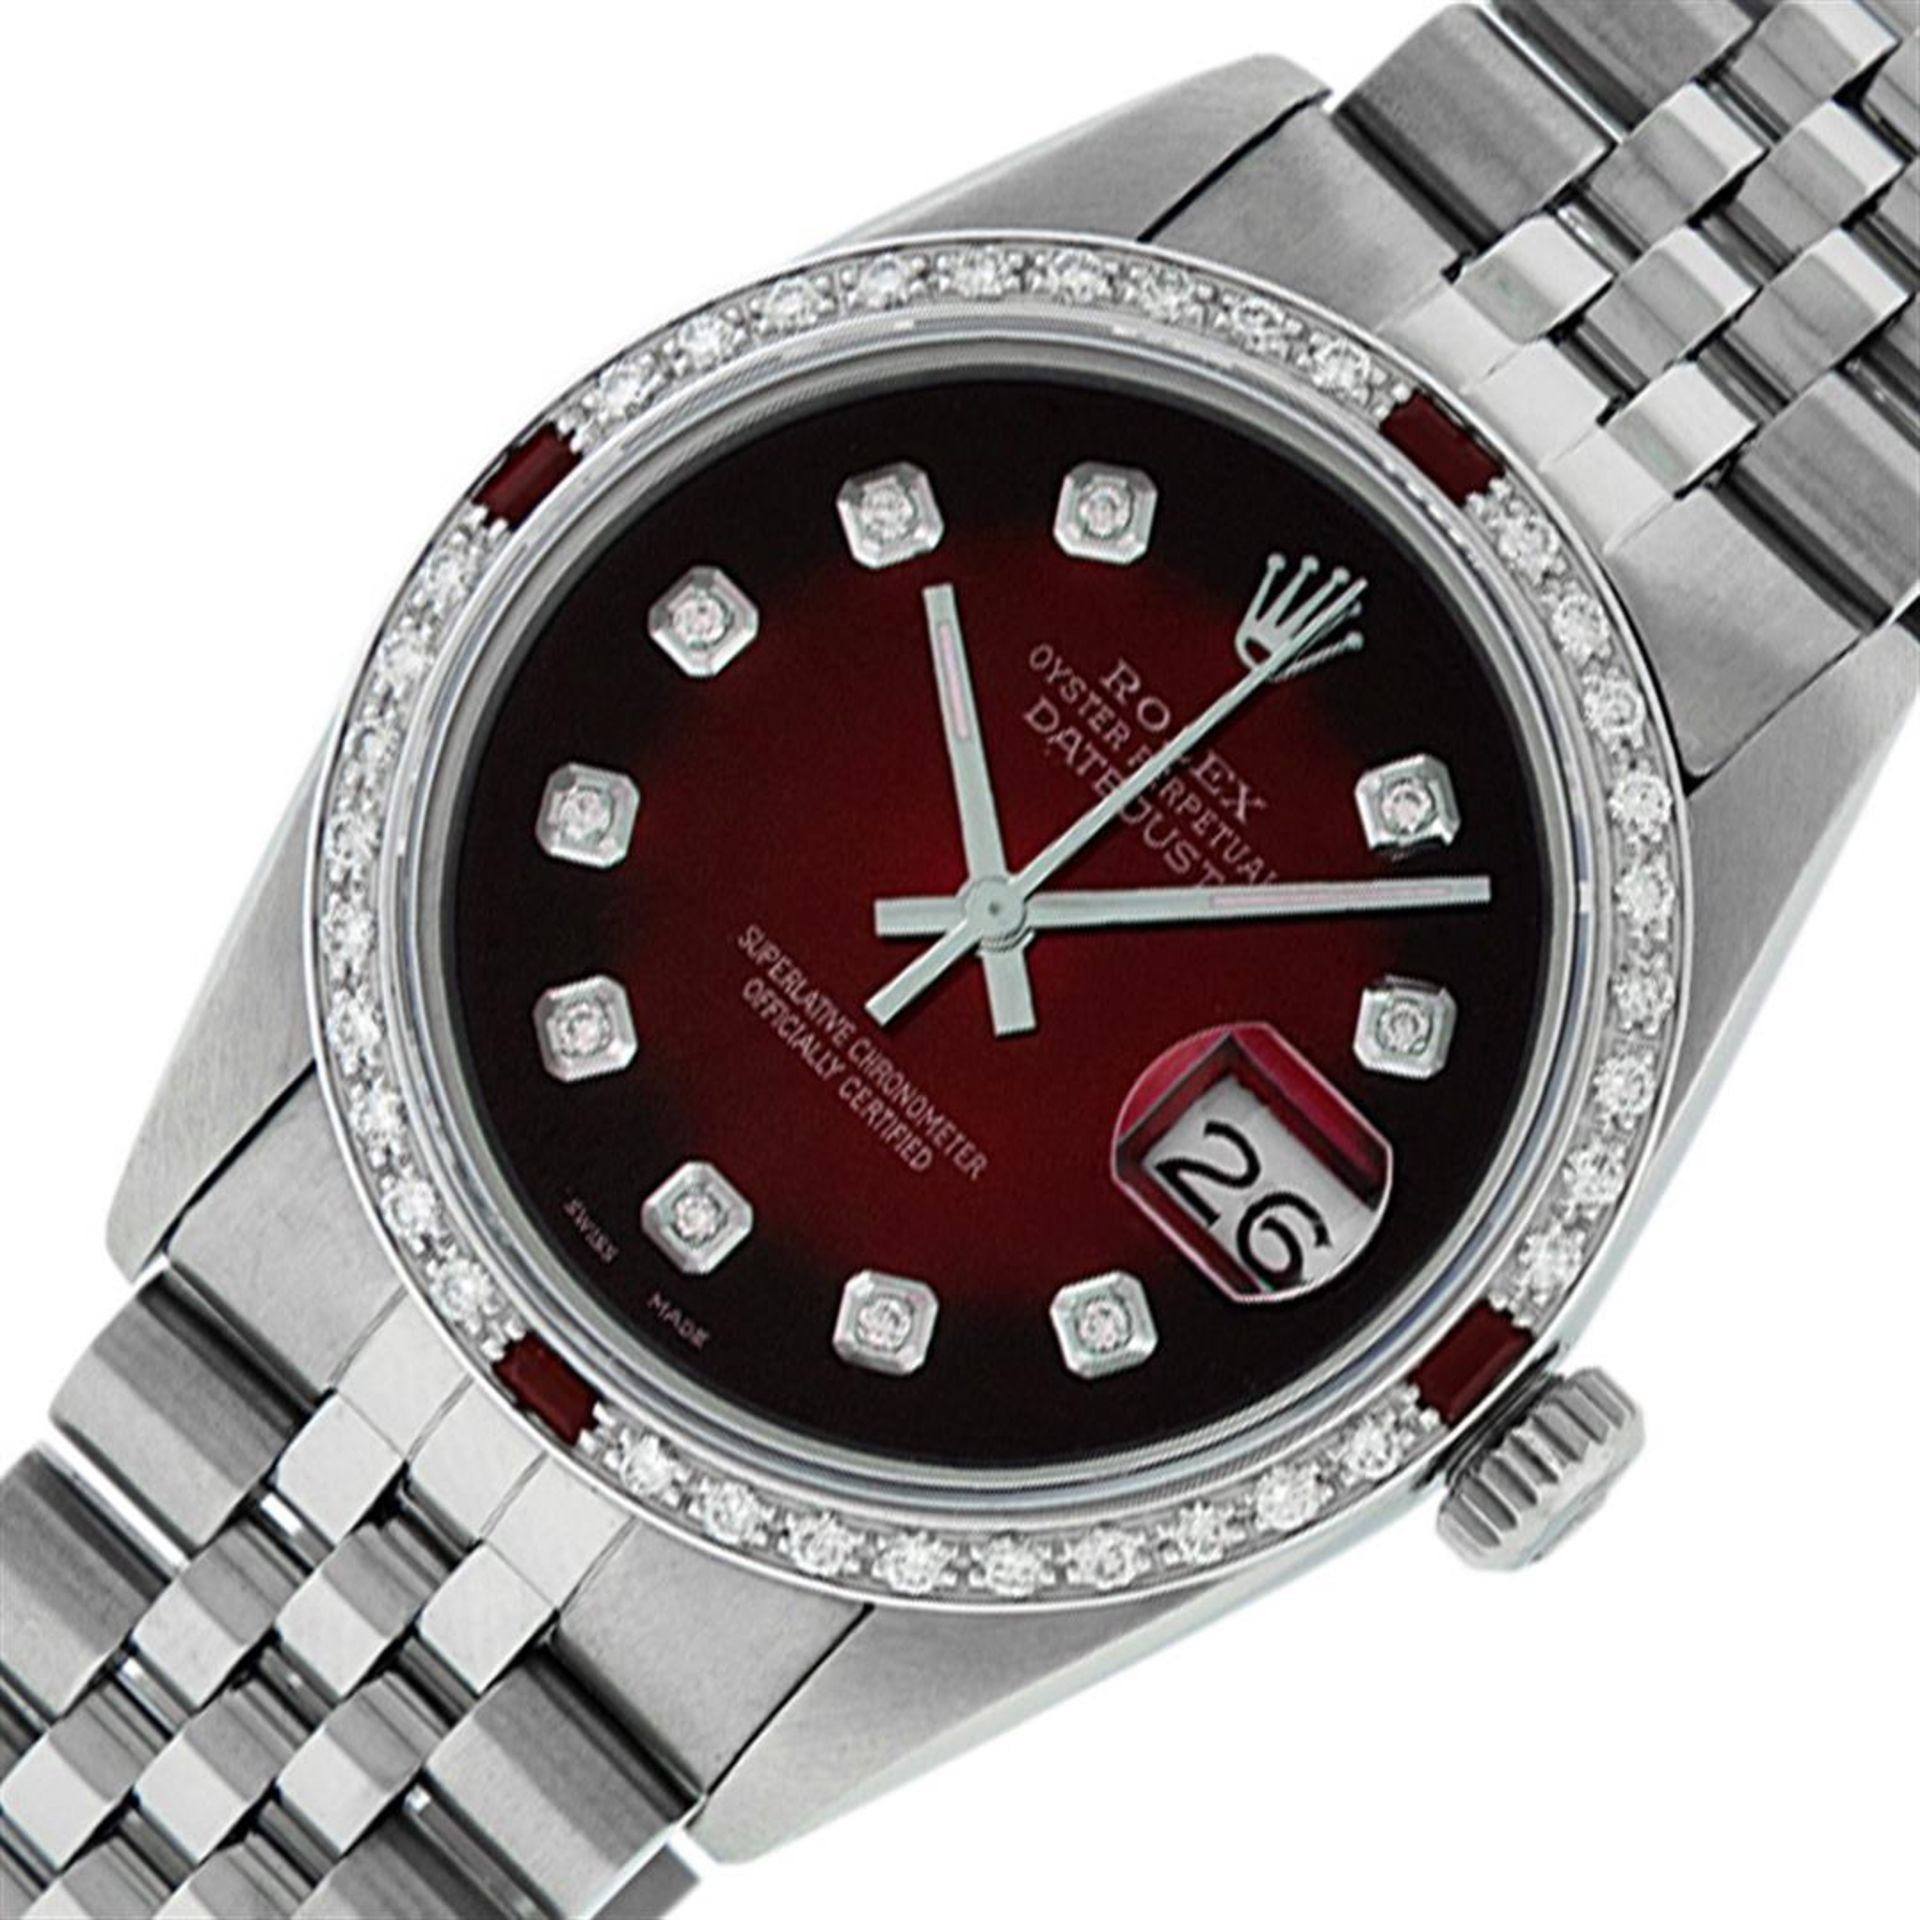 Rolex Mens Stainless Steel Red Vignette Diamond & Ruby Datejust Wristwatch - Image 3 of 9